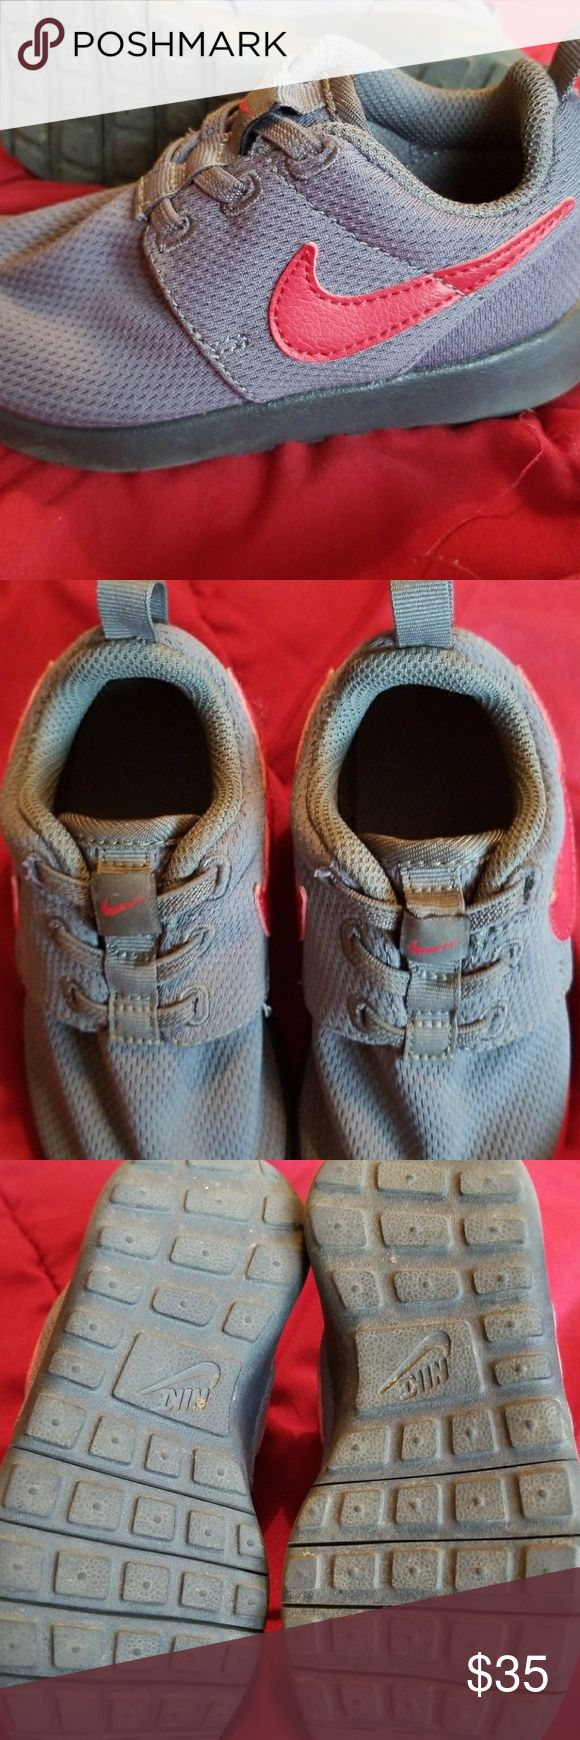 Toddler Nike Shoes Worn a hand full of times but still in great condition . They have some dirt on the bottom but other then that they look great! They are a size 9 toddler Nike Shoes